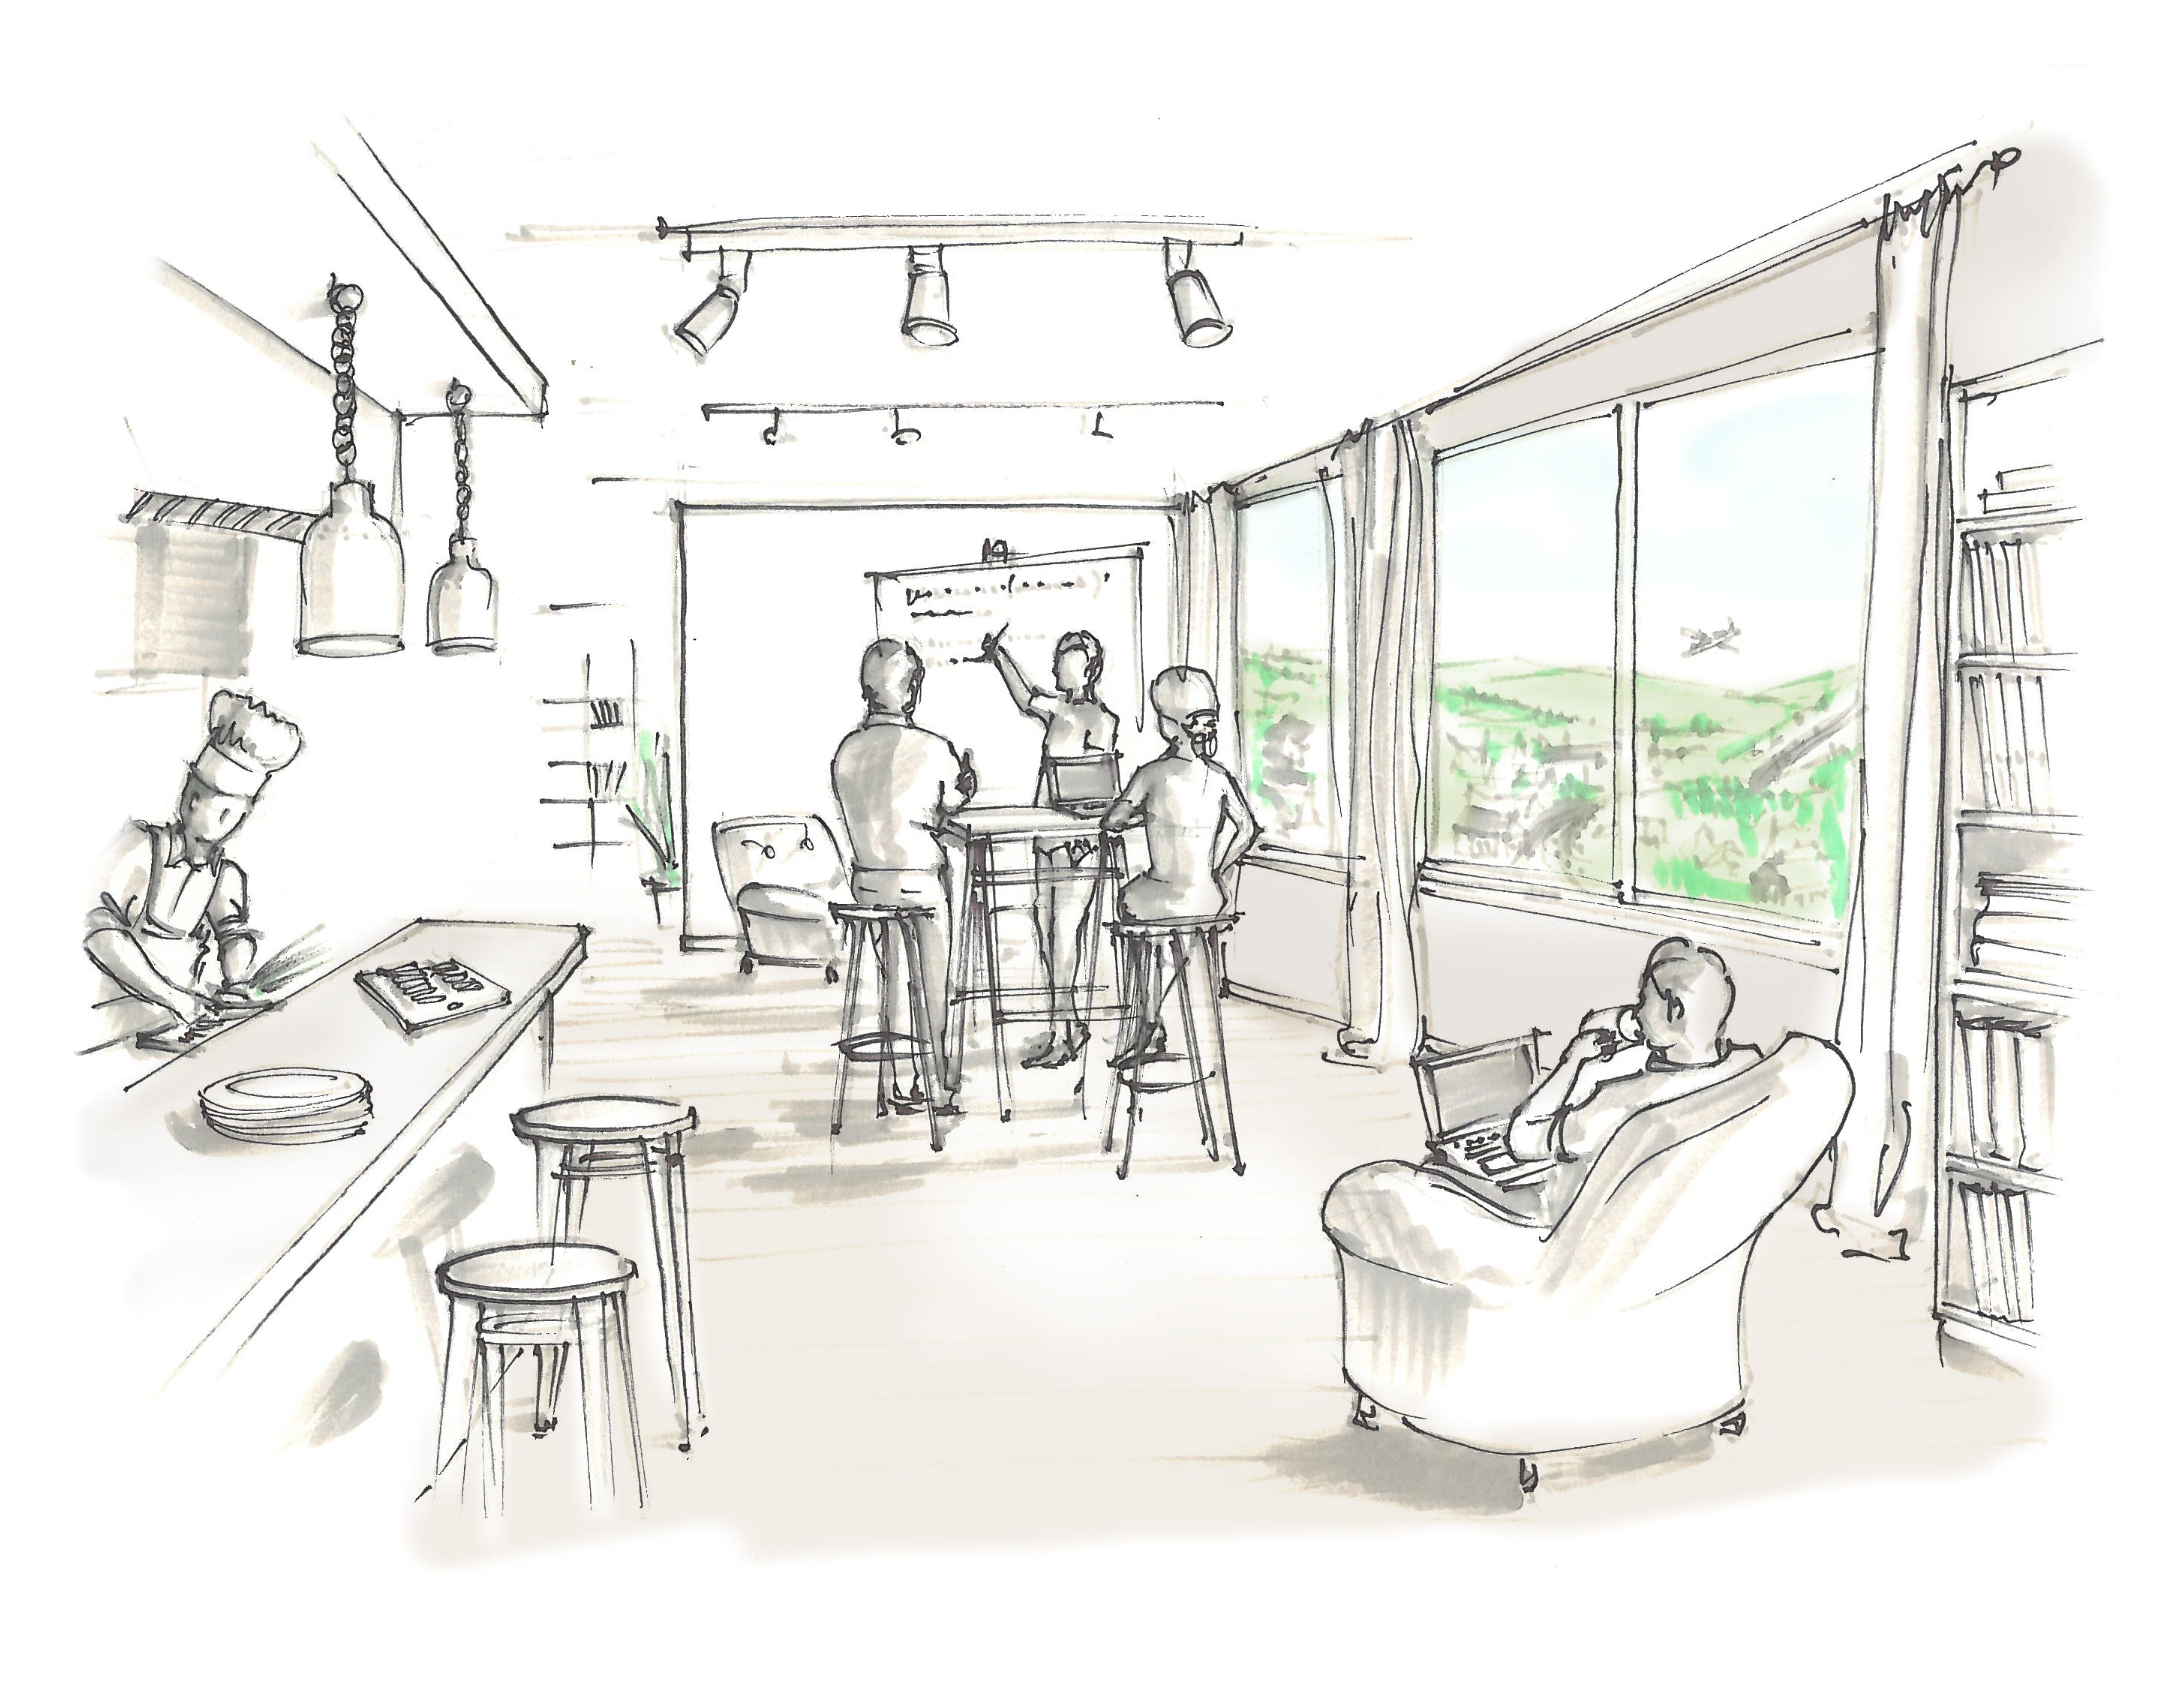 1 sketch of Guest House [Truckee] main workspace (interior)